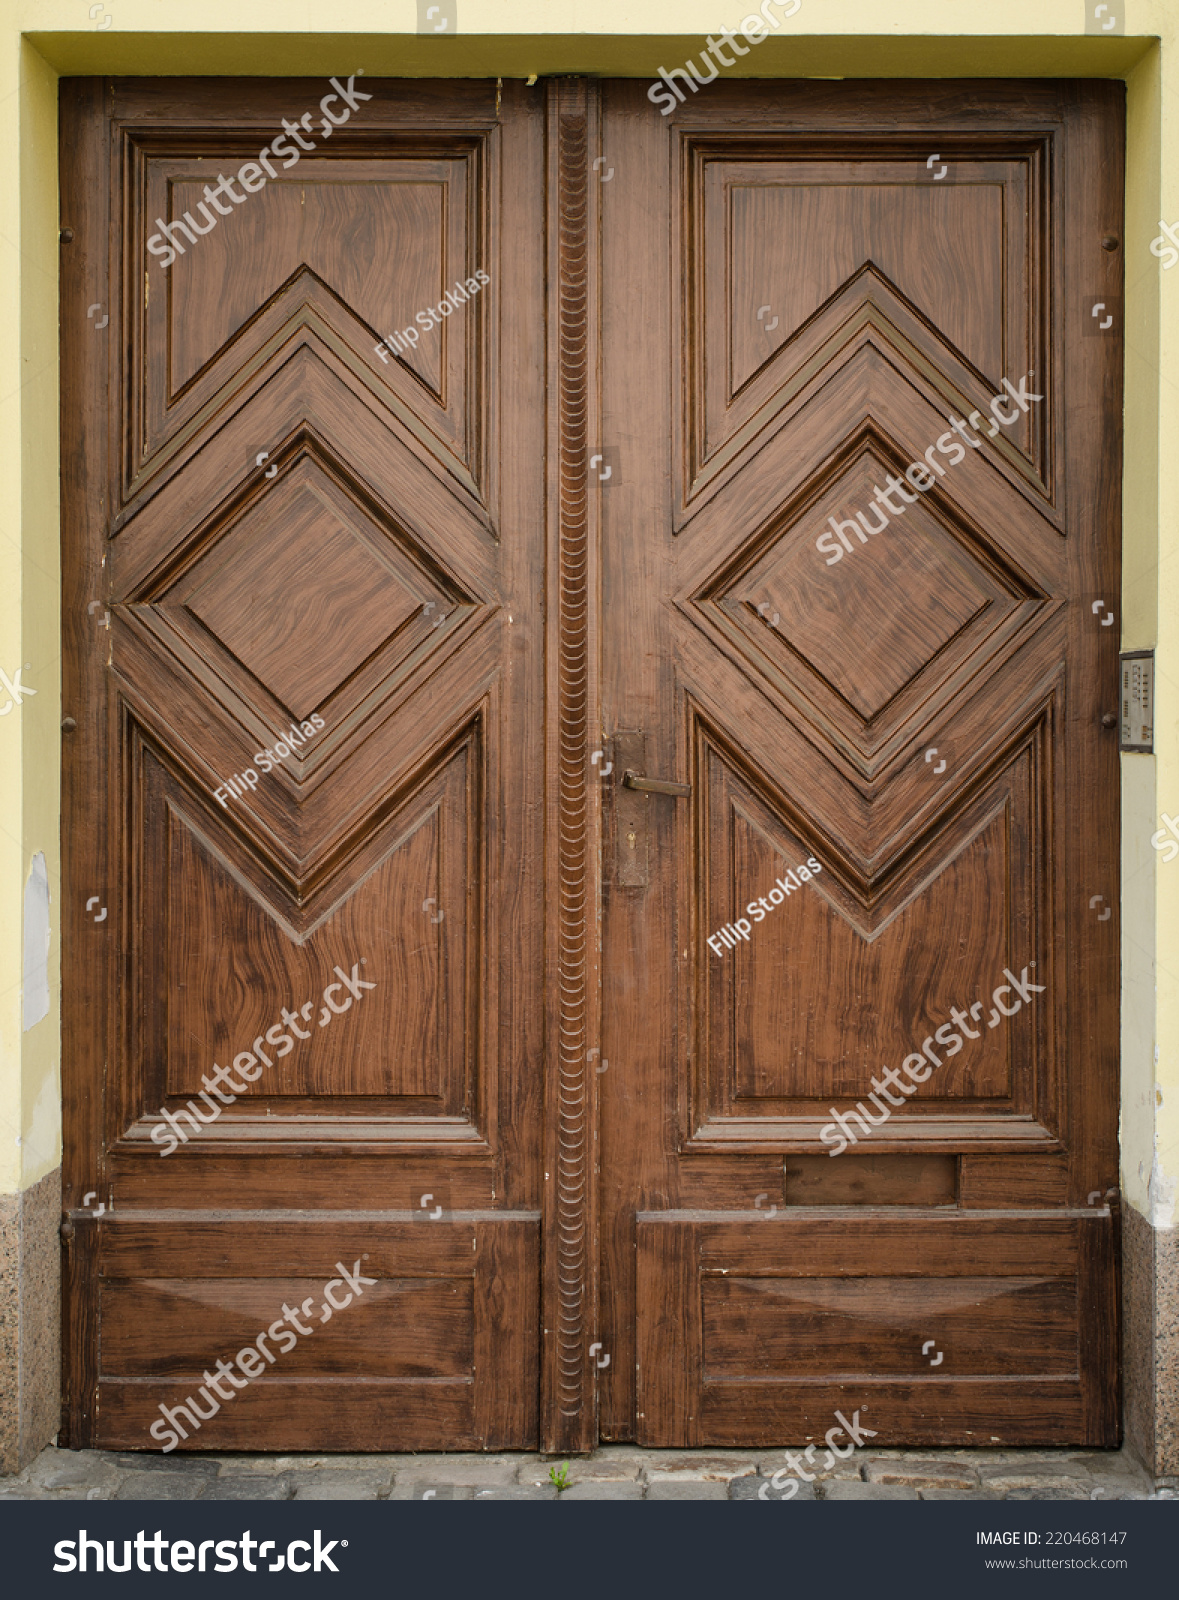 Historical ornate wooden door prague the czech republic for Door z prague